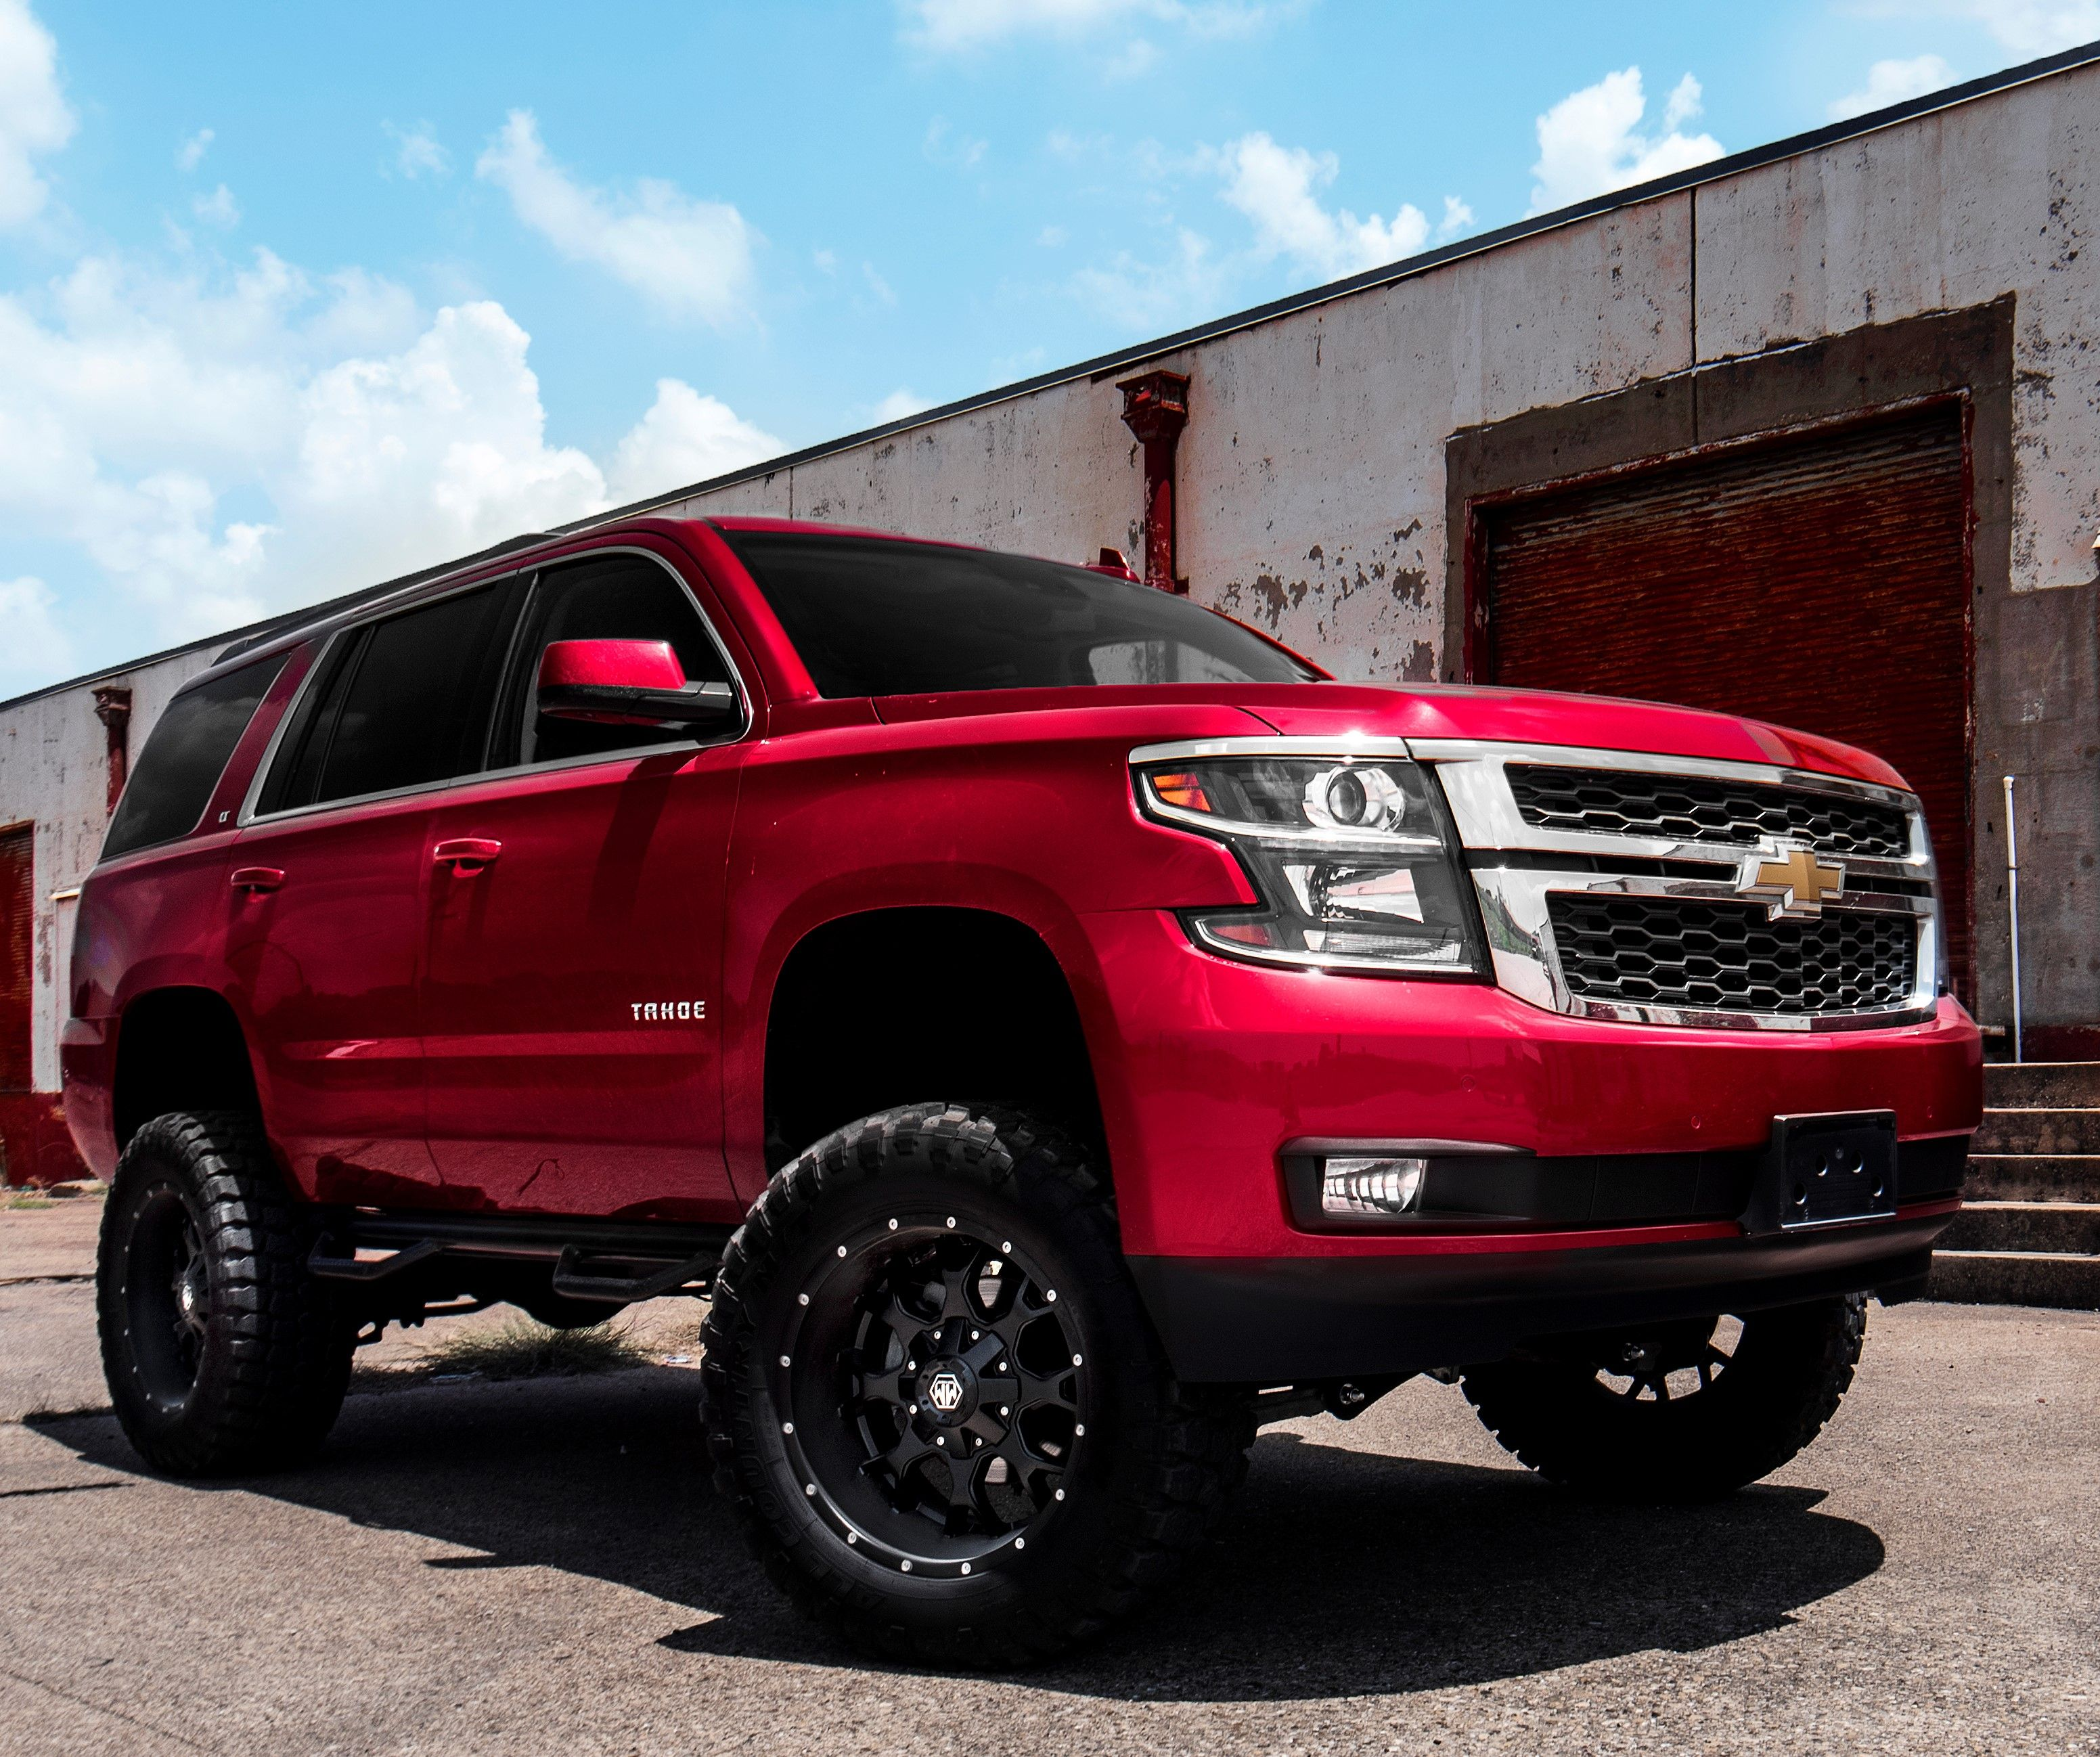 Check Out Our Full Inventory Of Lifted Suvs With Images Truck